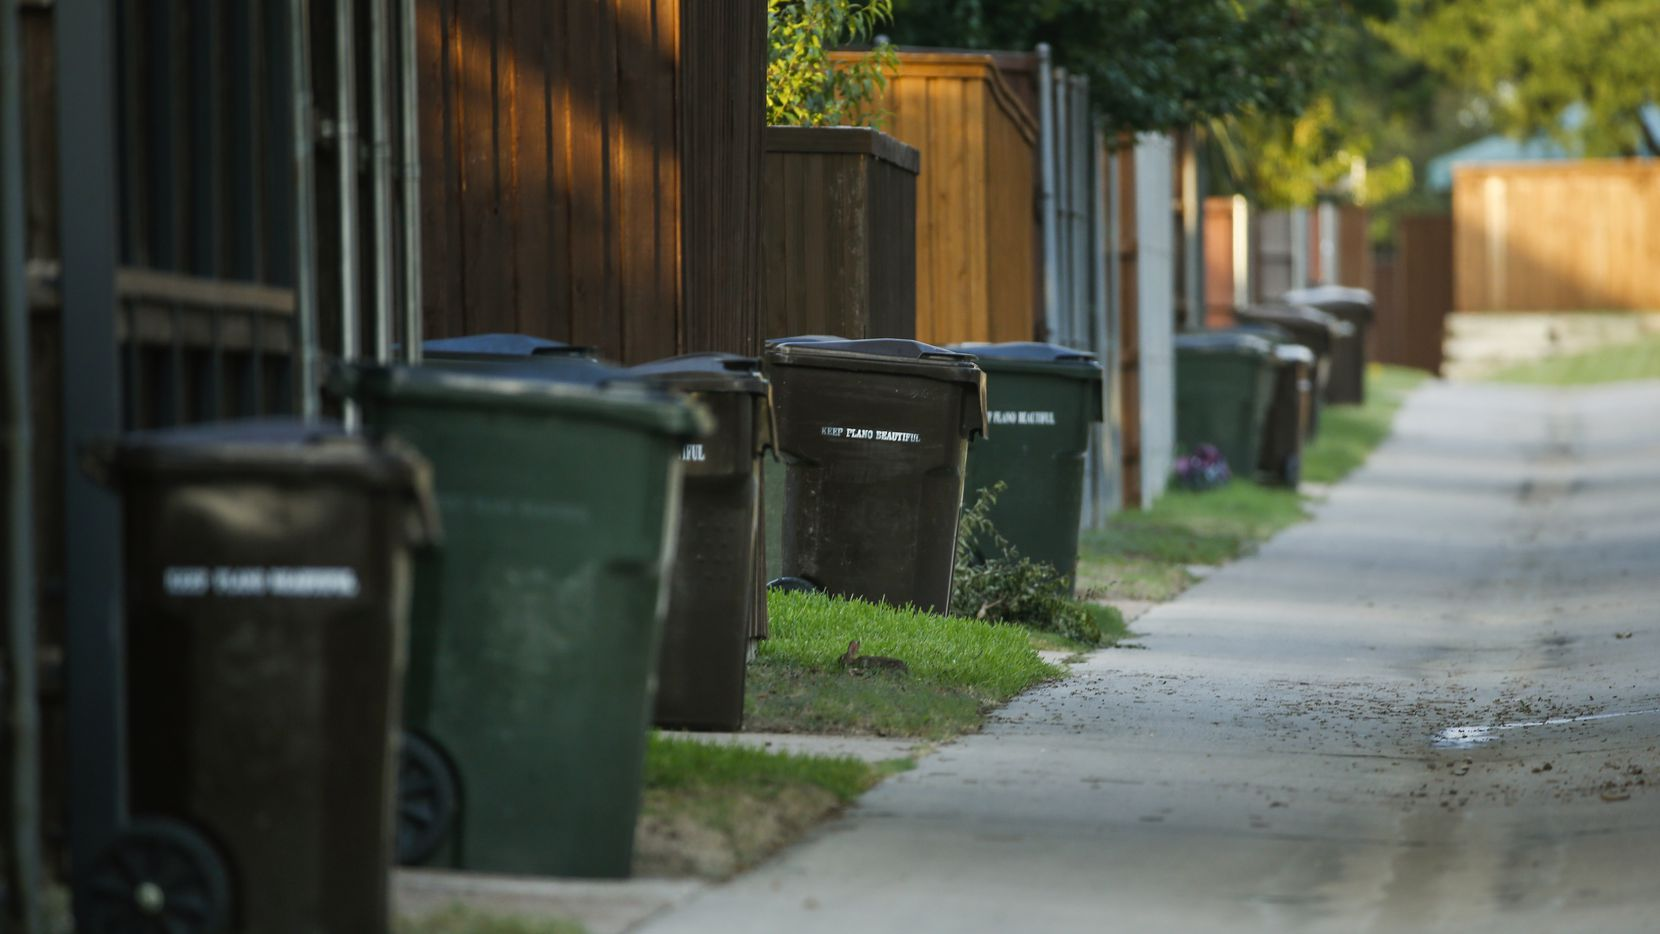 Trash cans line a residential alleyway in Plano in this file photo. (Ryan Michalesko/The Dallas Morning News)